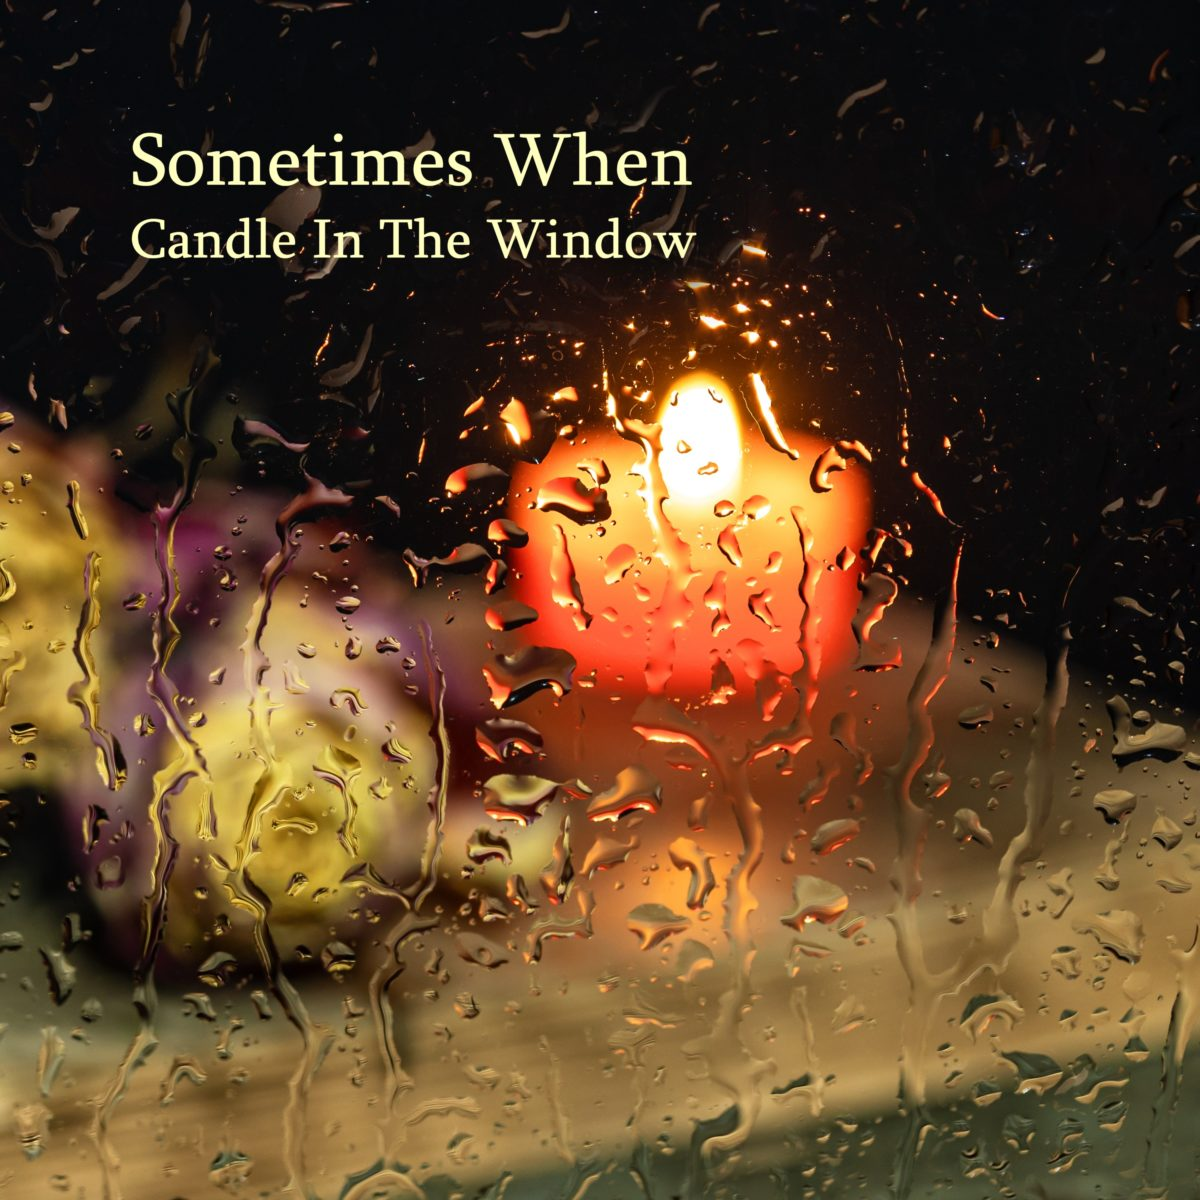 Sometime When (Candle in the Window)